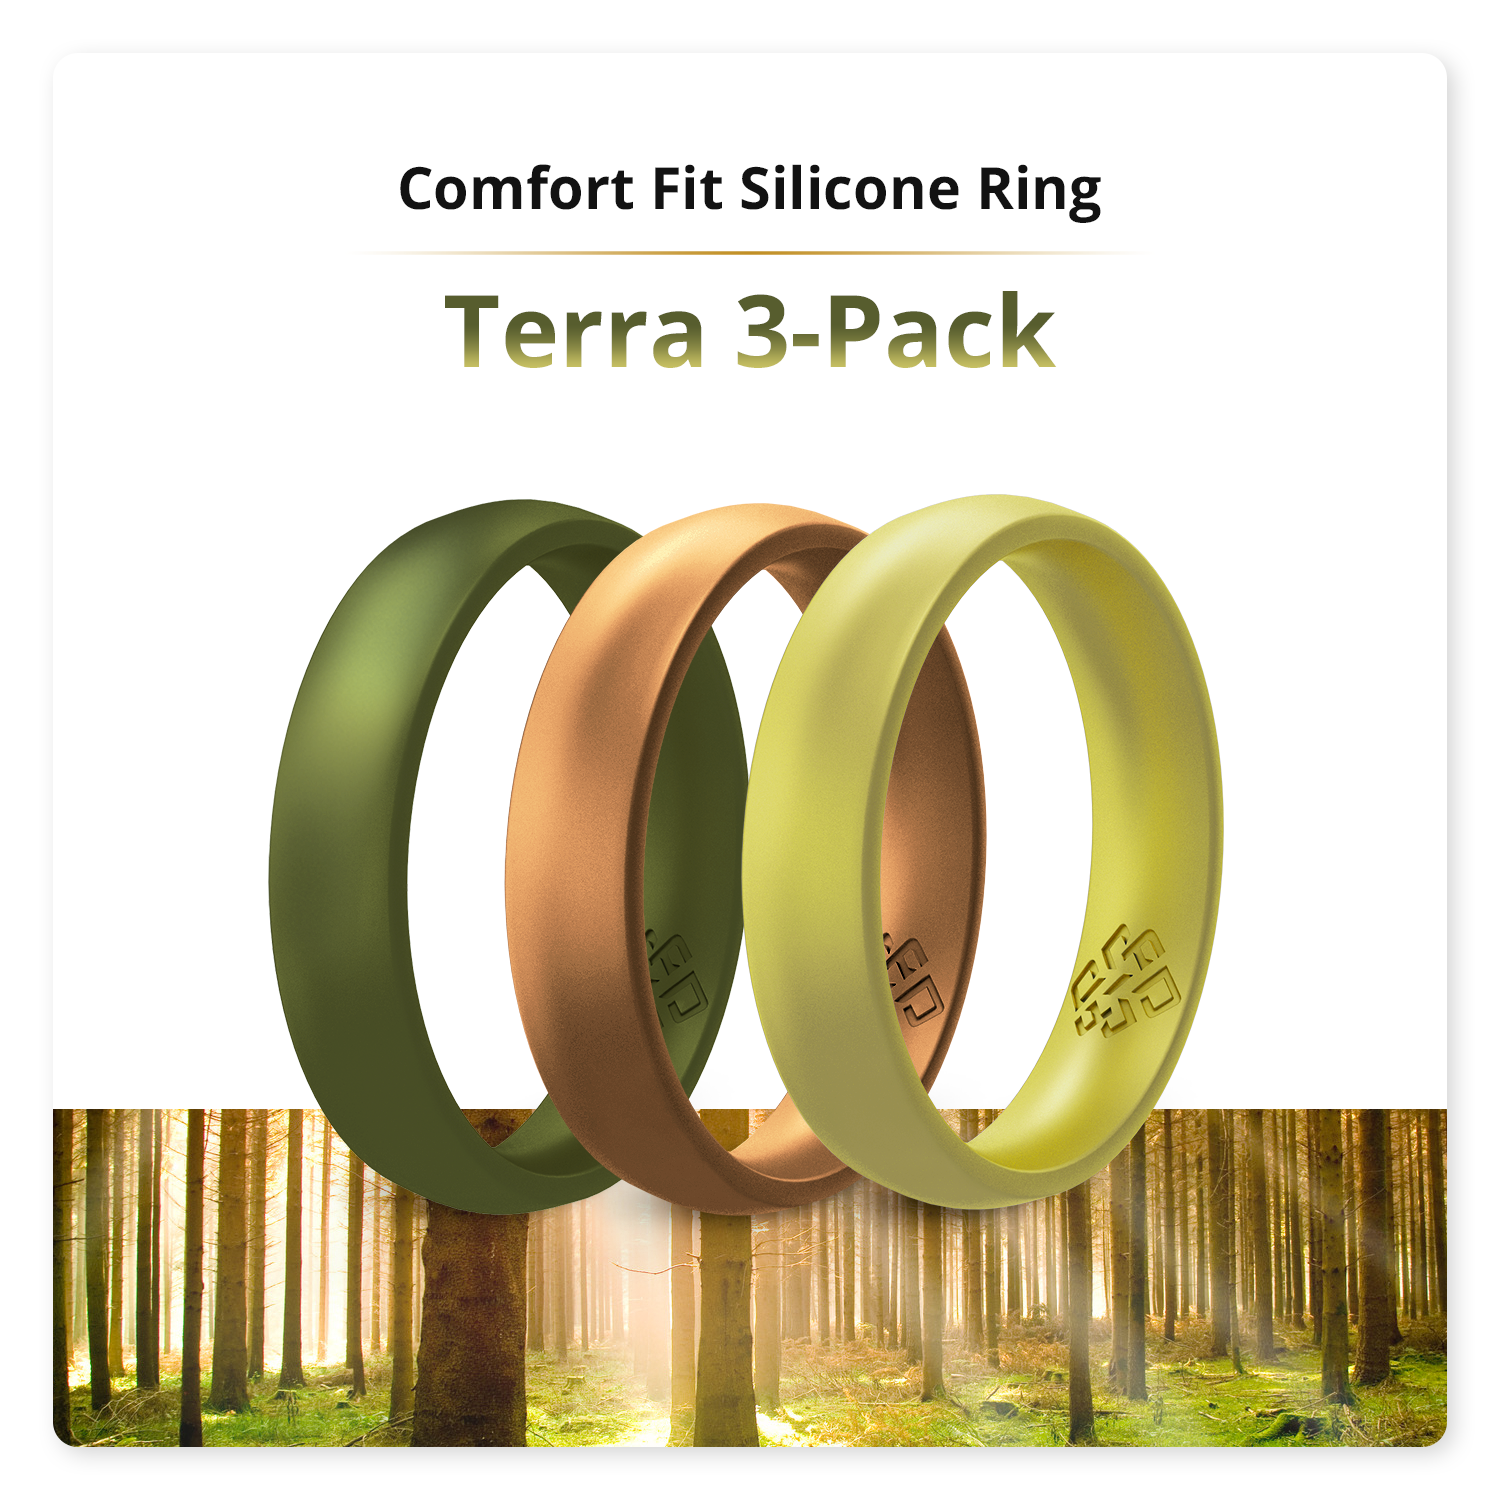 Terra 3-Pack Comfort Fit Silicone Wedding Ring